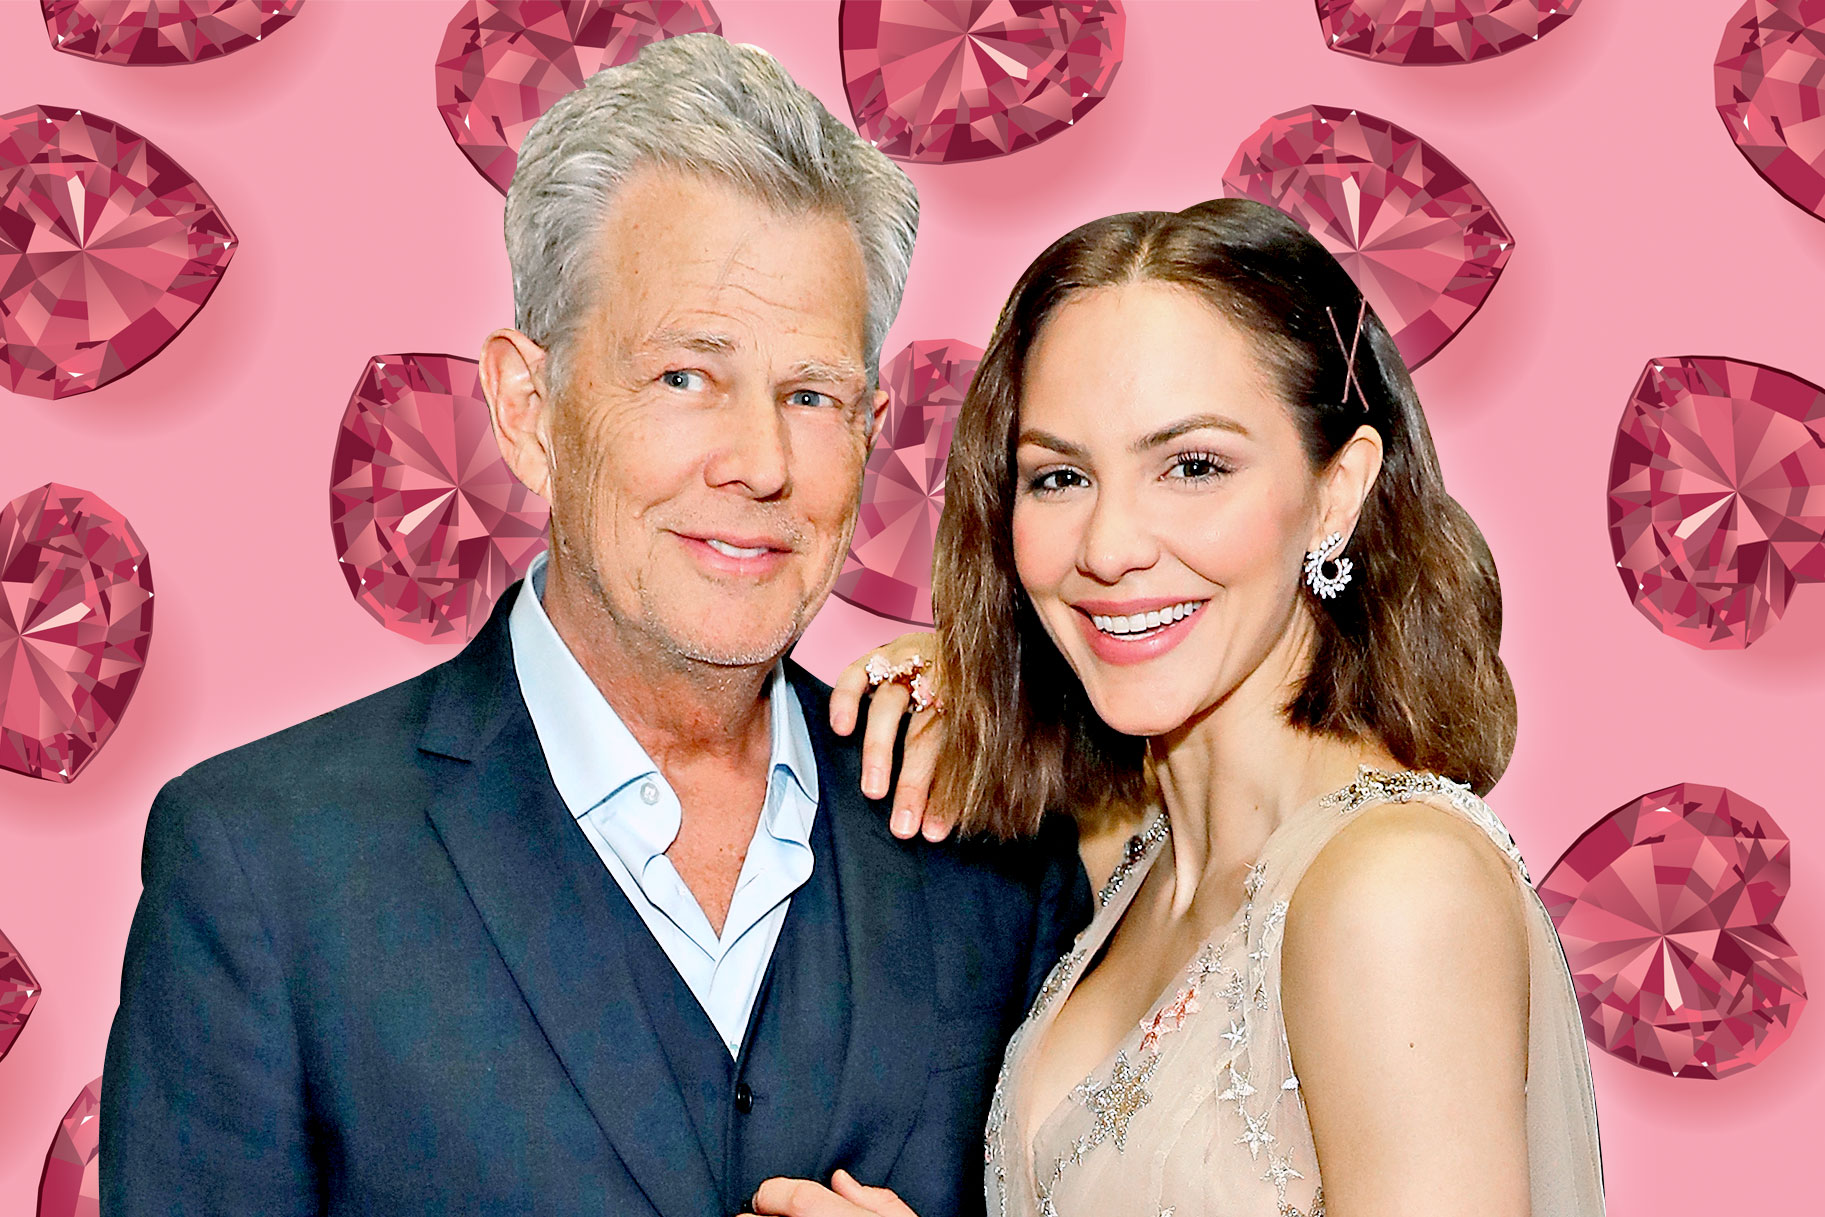 See Katharine McPhee and David Foster's Outrageous Wedding Cake